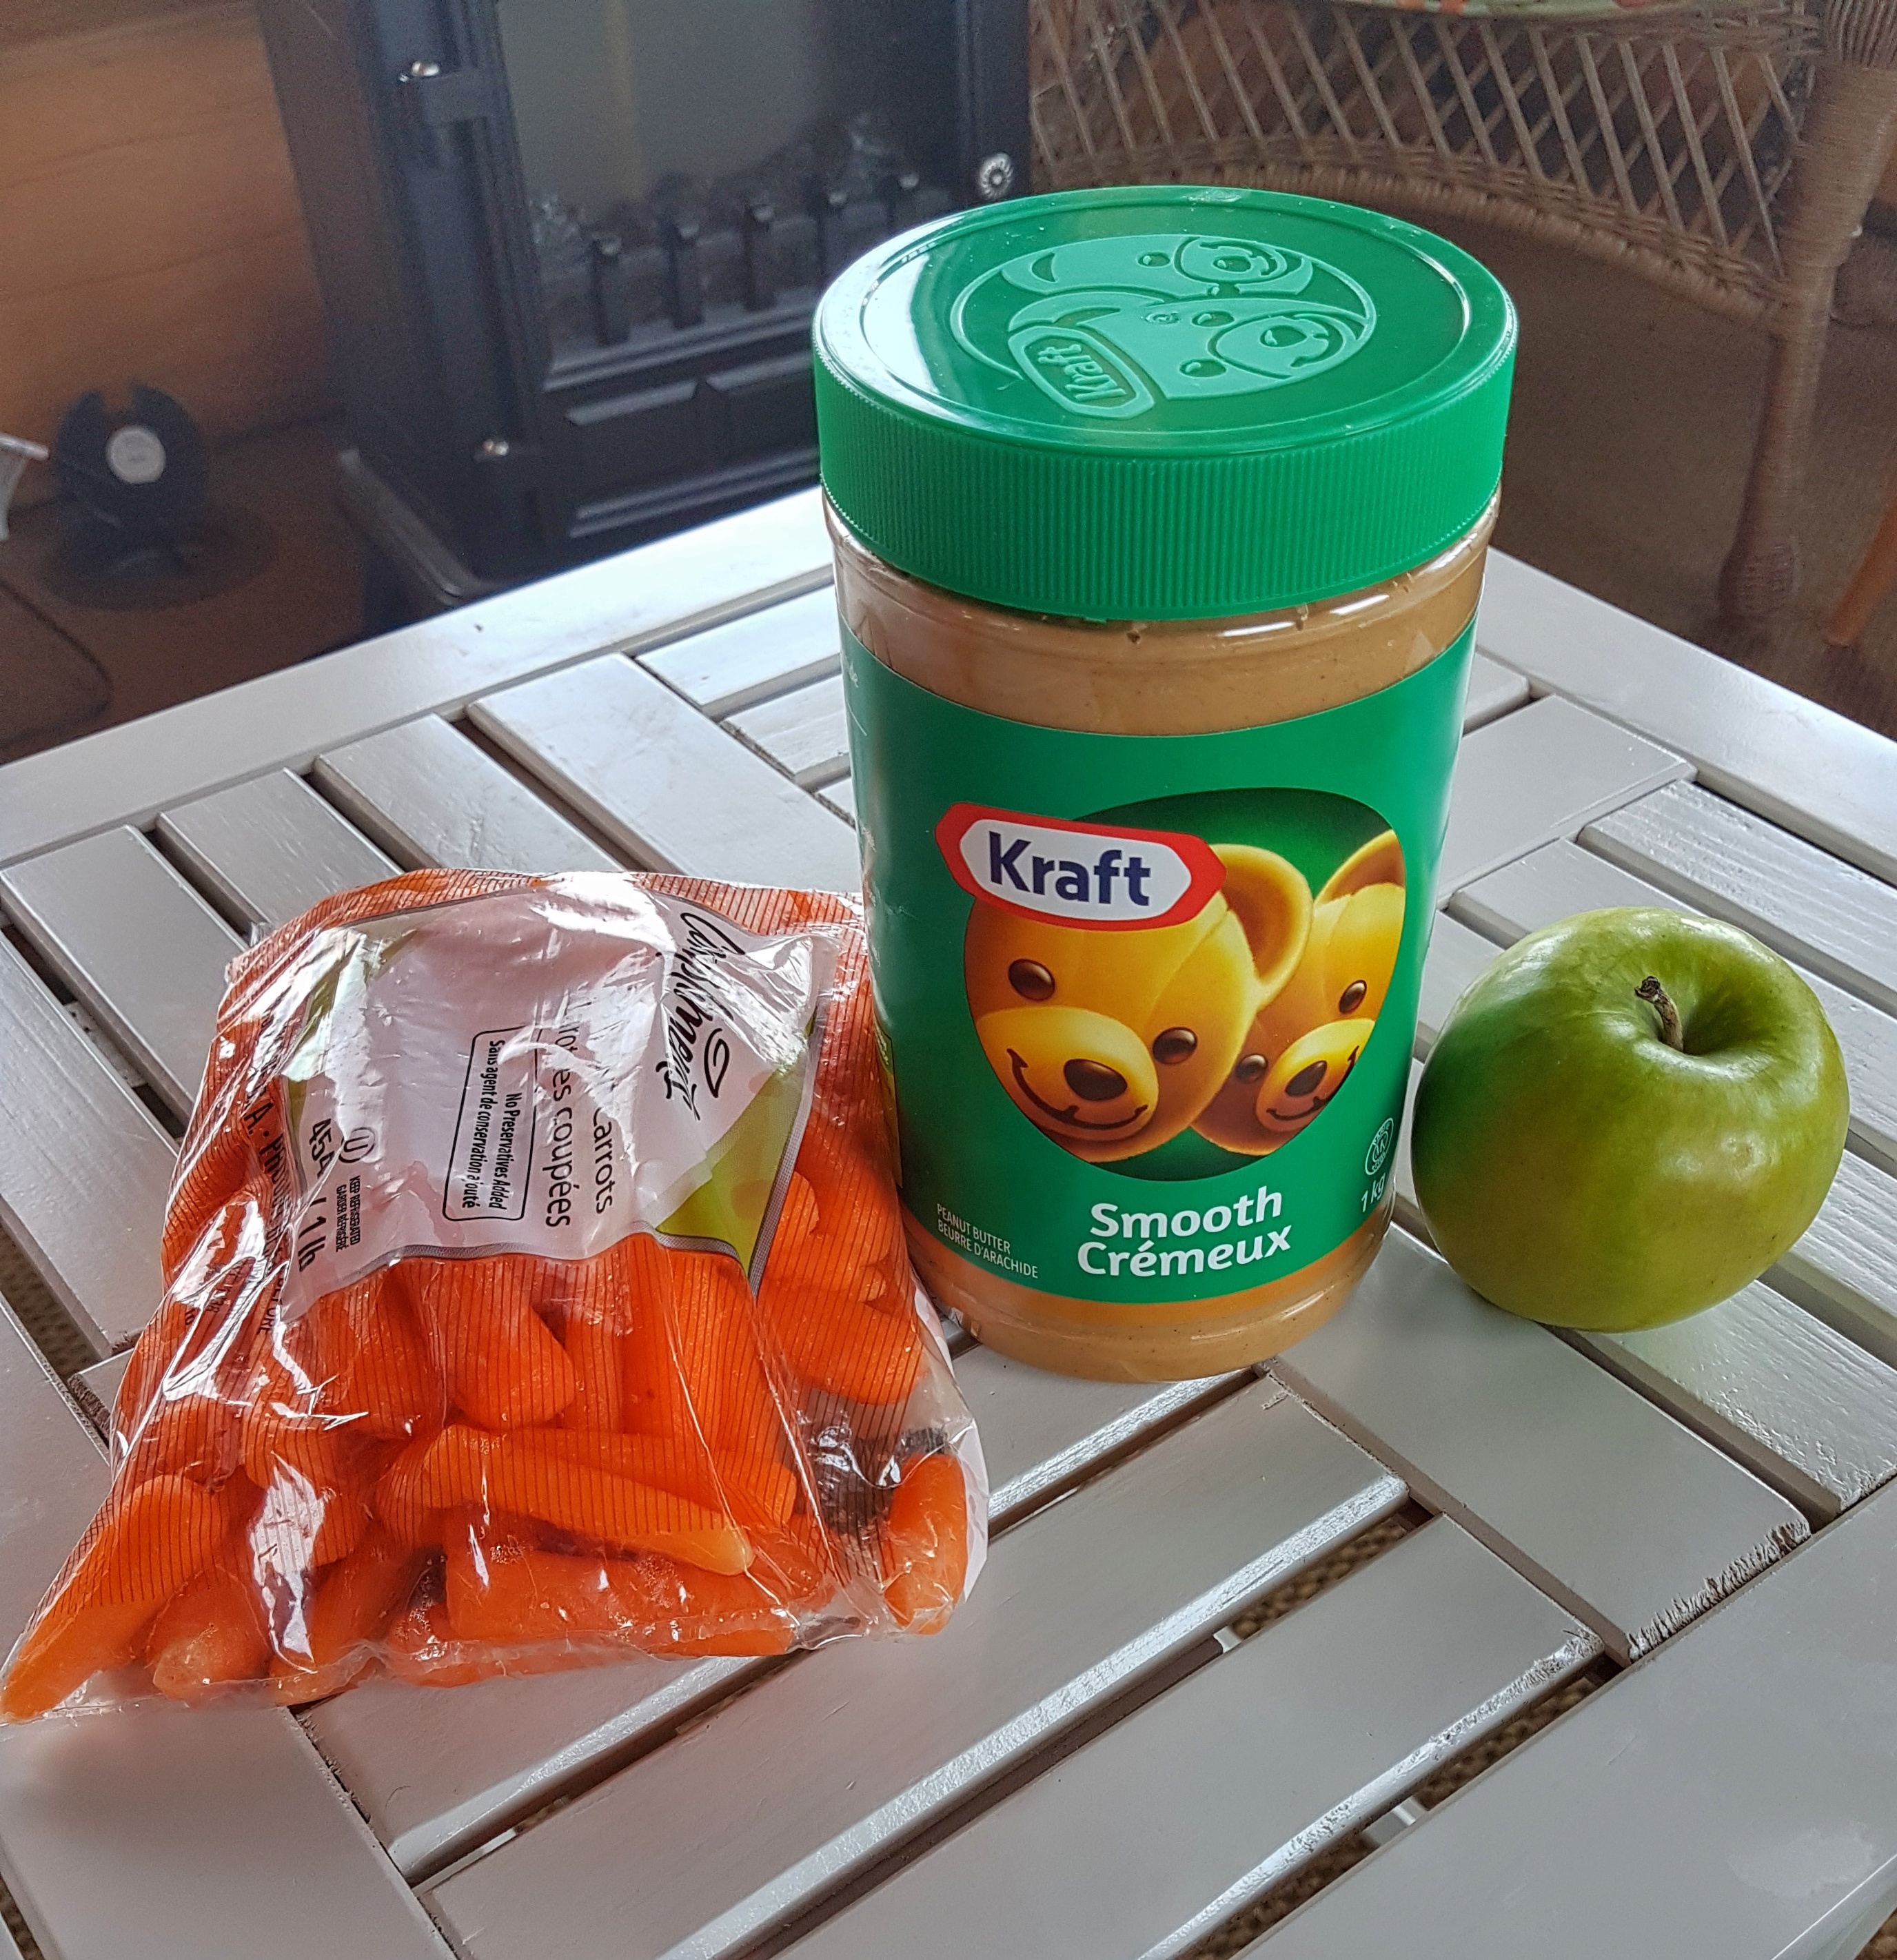 Peanut butter and veggies